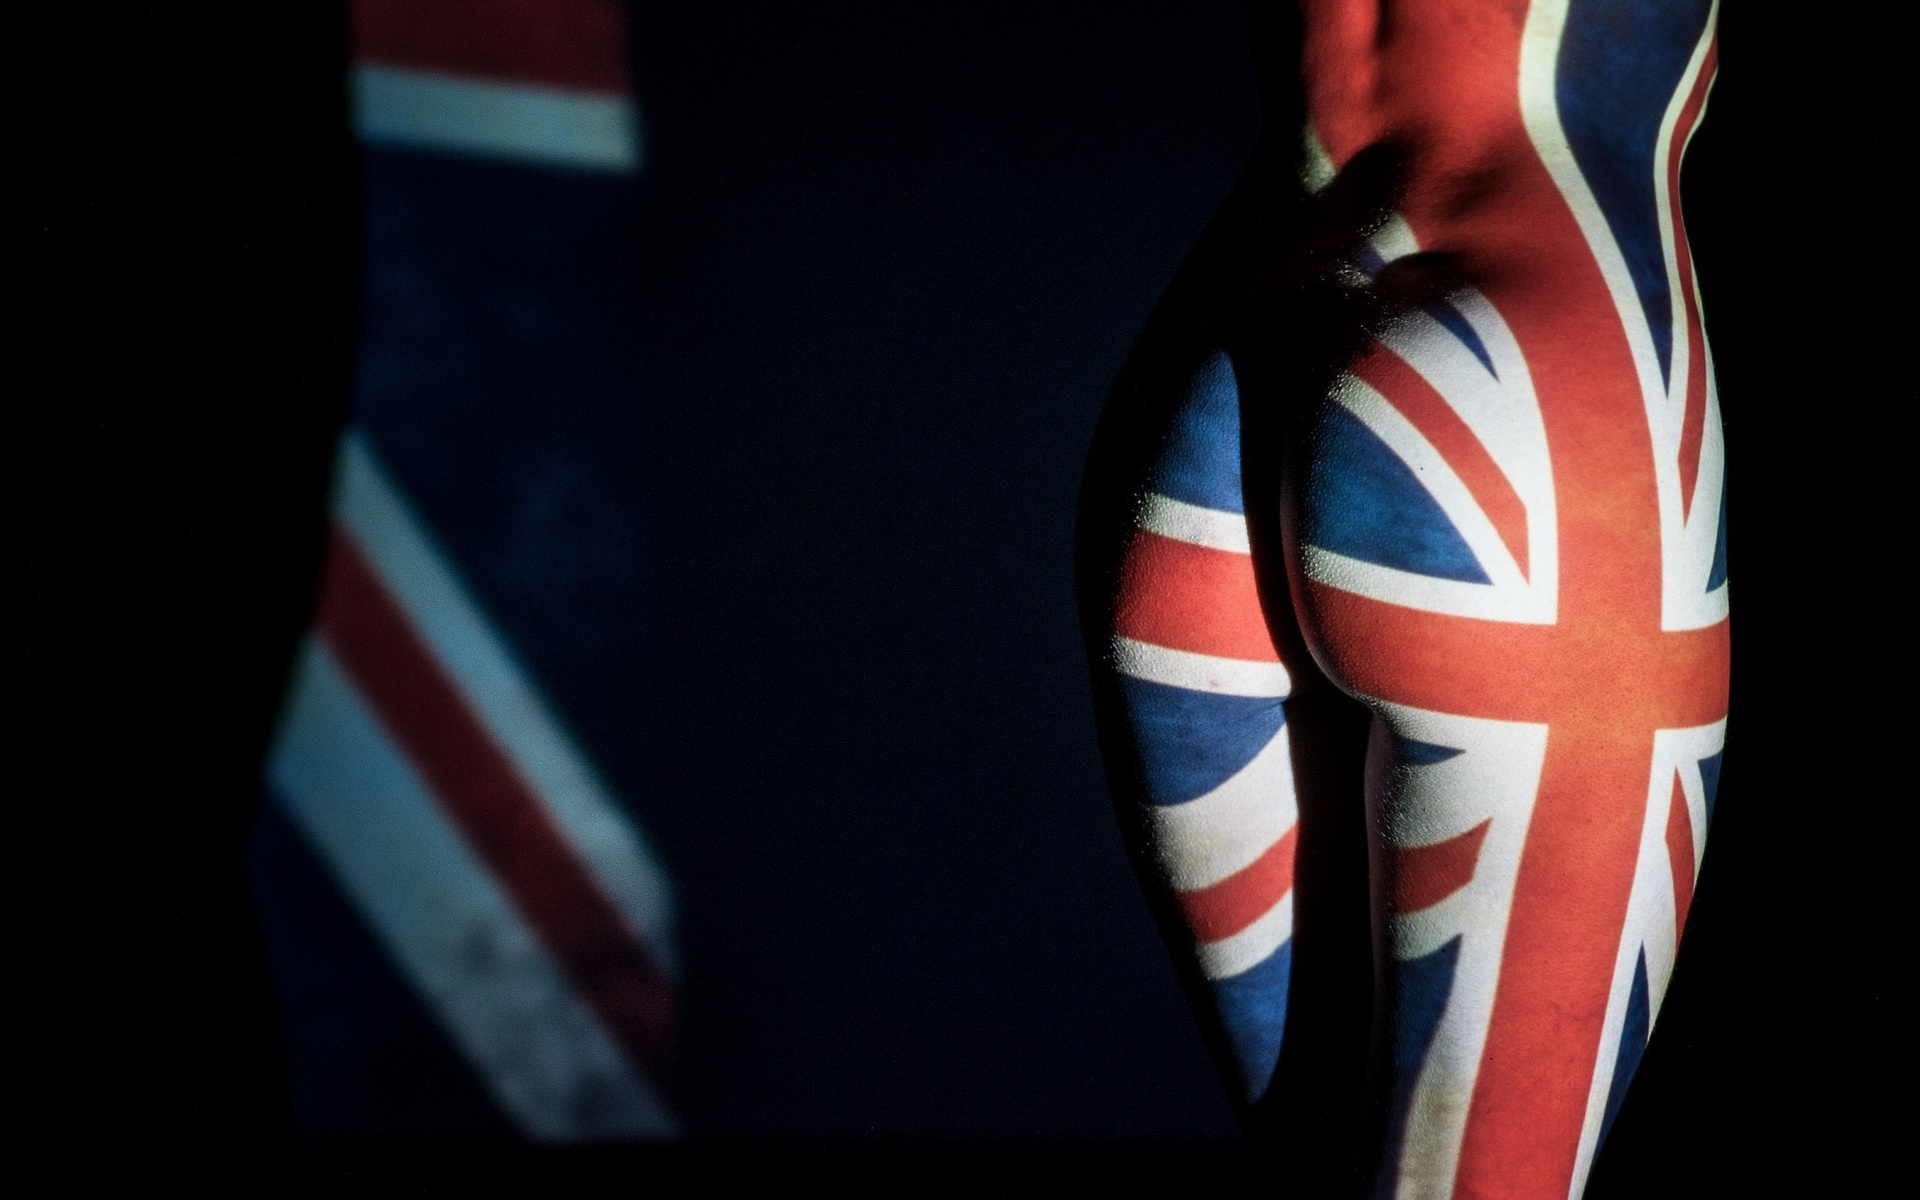 ass, women, nude, dark, flag, union jack, british, body paint, британский флаг